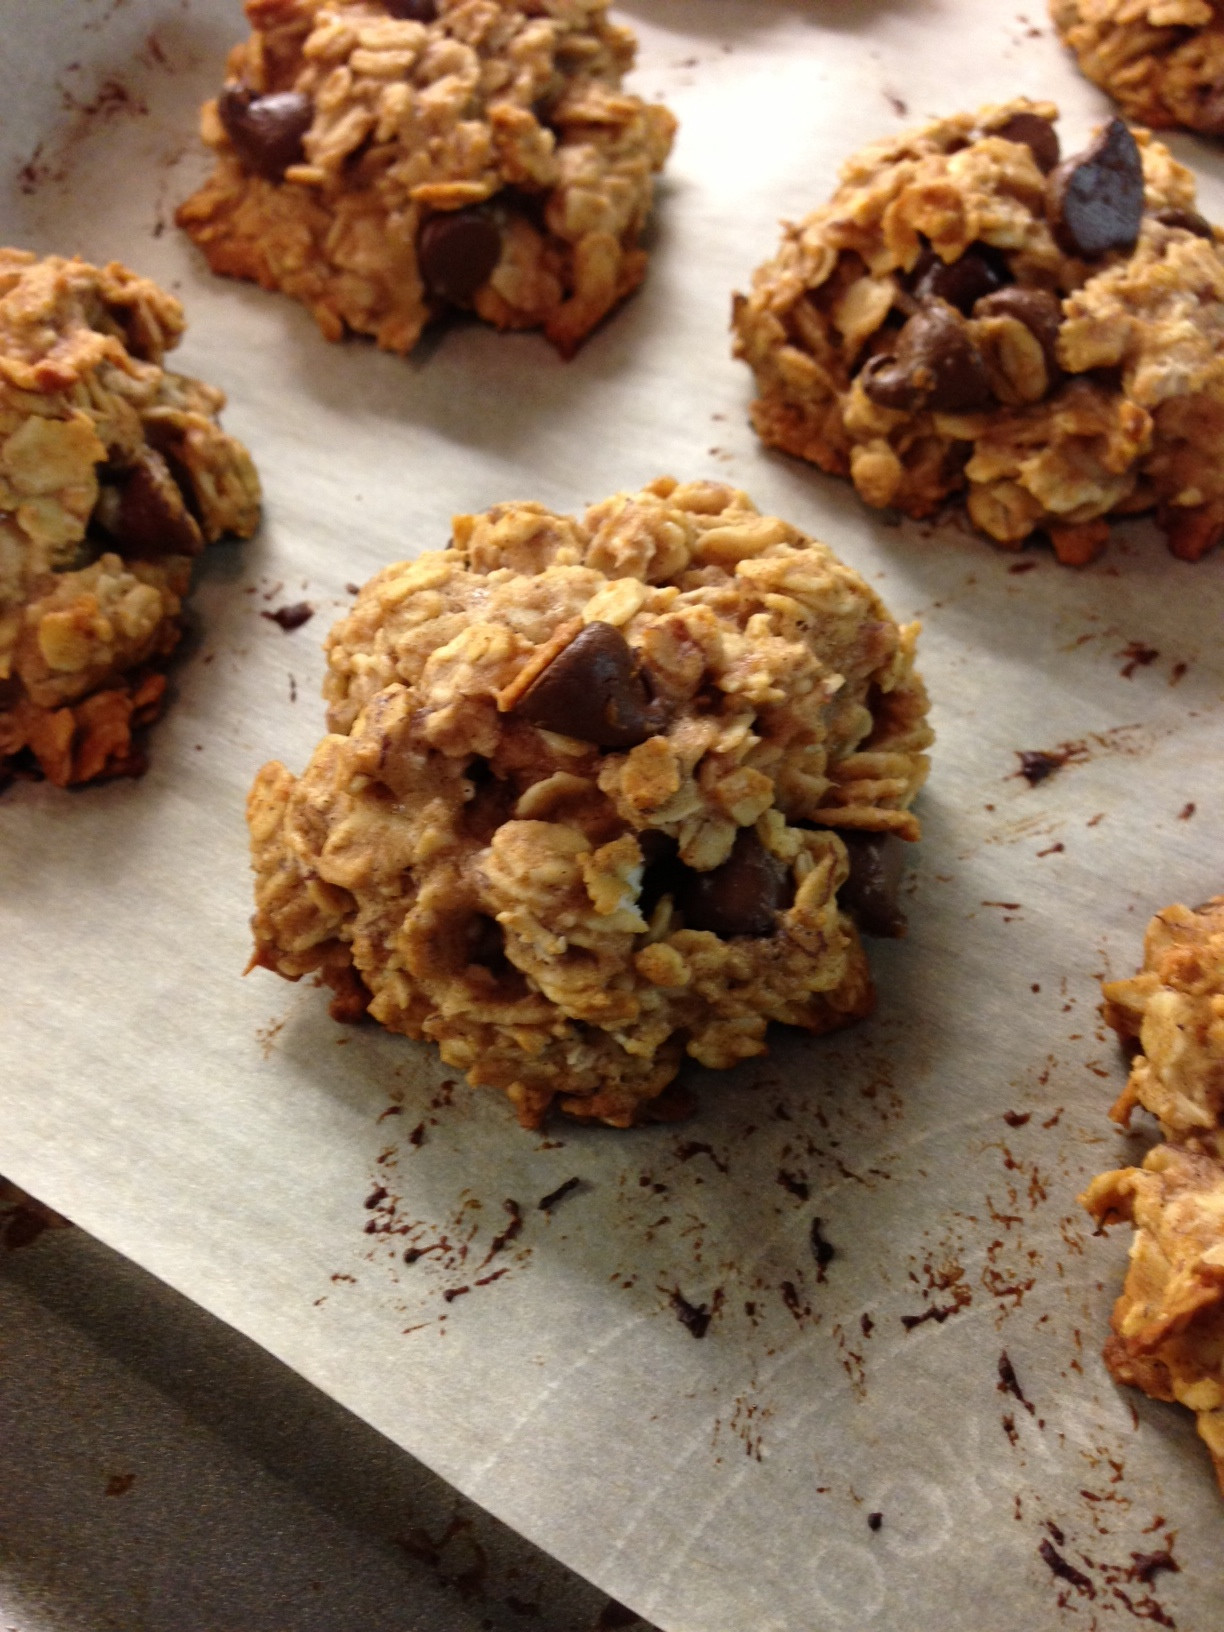 Chocolate Chip Oatmeal Cookies Healthy  Healthy Oatmeal Chocolate Chip Cookies Lauren Follett